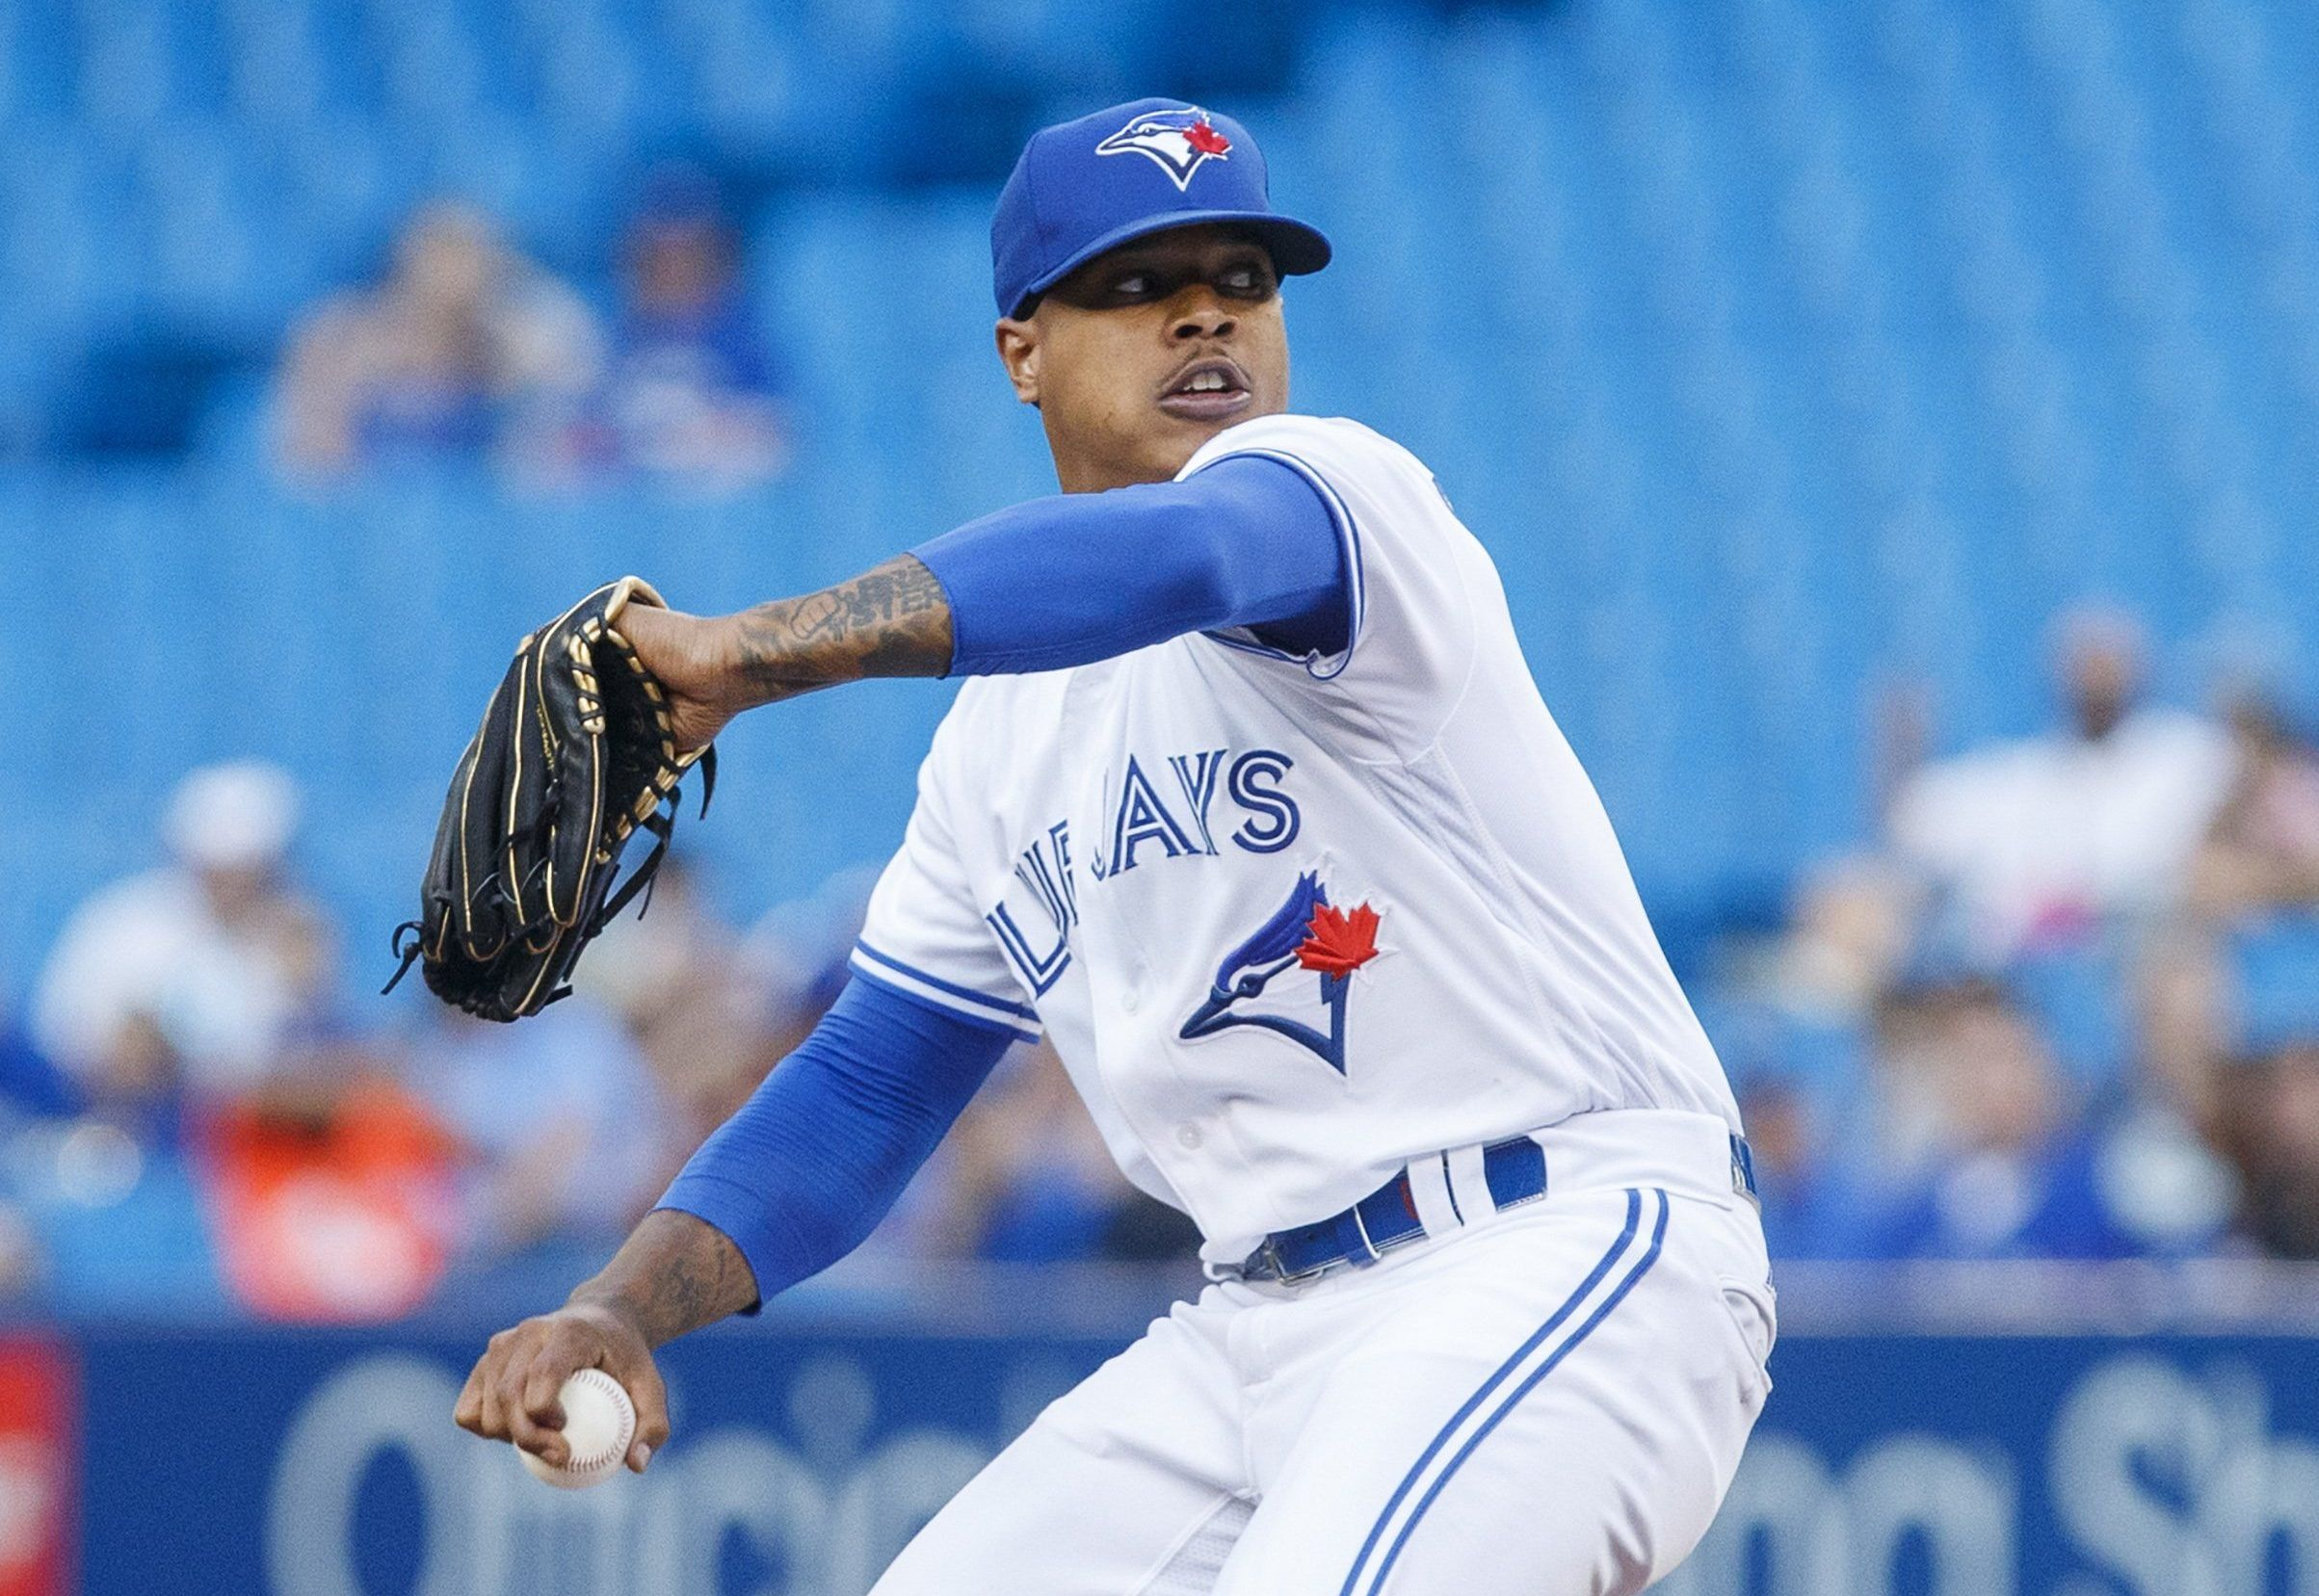 Mlb Trade Deadline 2019 Marcus Stroman To The Mets Red Sox To Sign Edwin Diaz Thor Trouble For Mets And More Marcus Stroman Mets Mlb